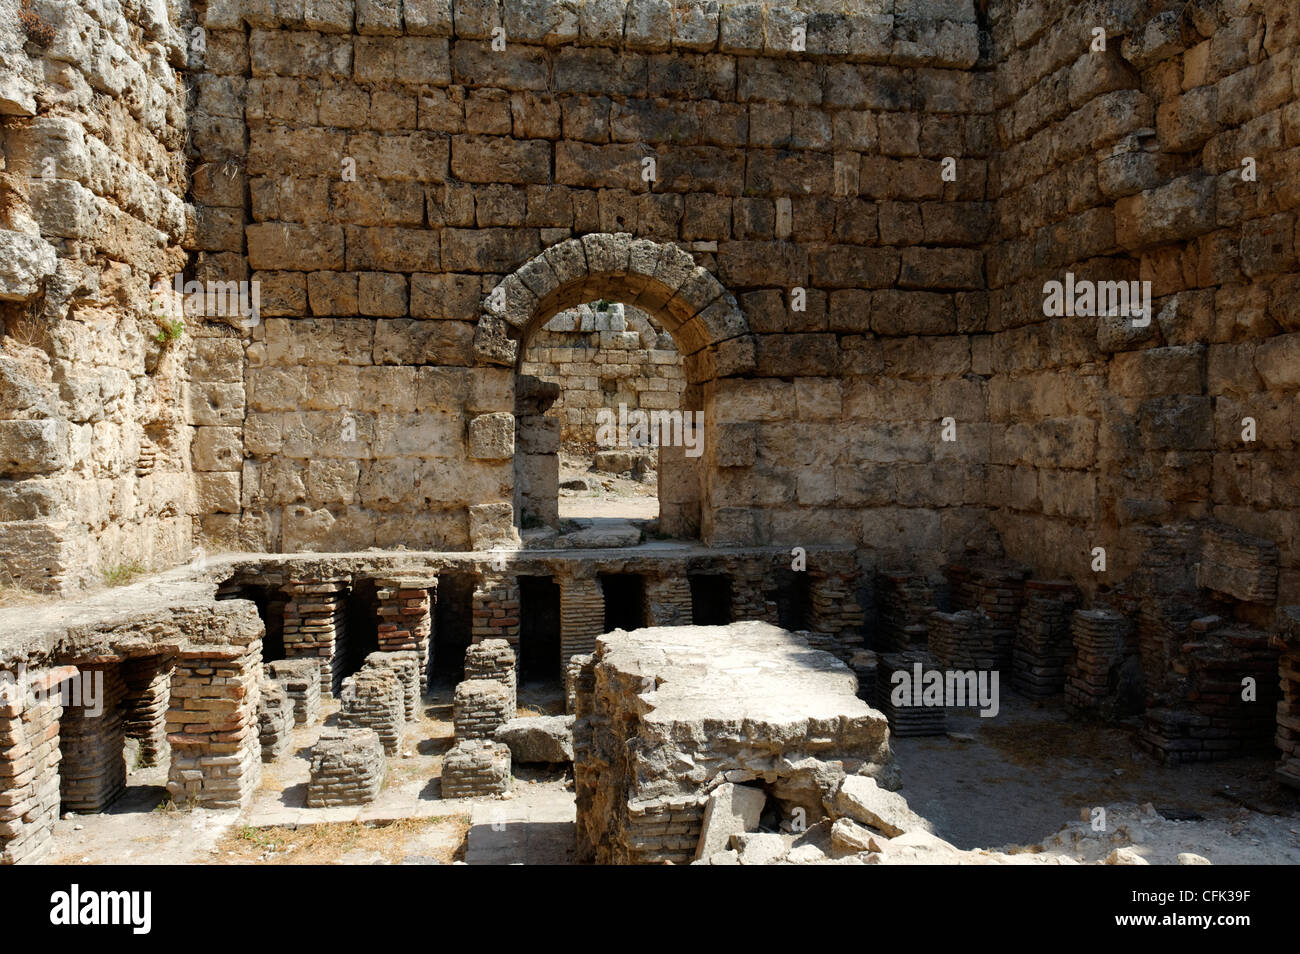 Perge. Antalya. Turkey. Hypocaust or underfloor heating system of the tepidarium or warm room at the Roman South Stock Photo